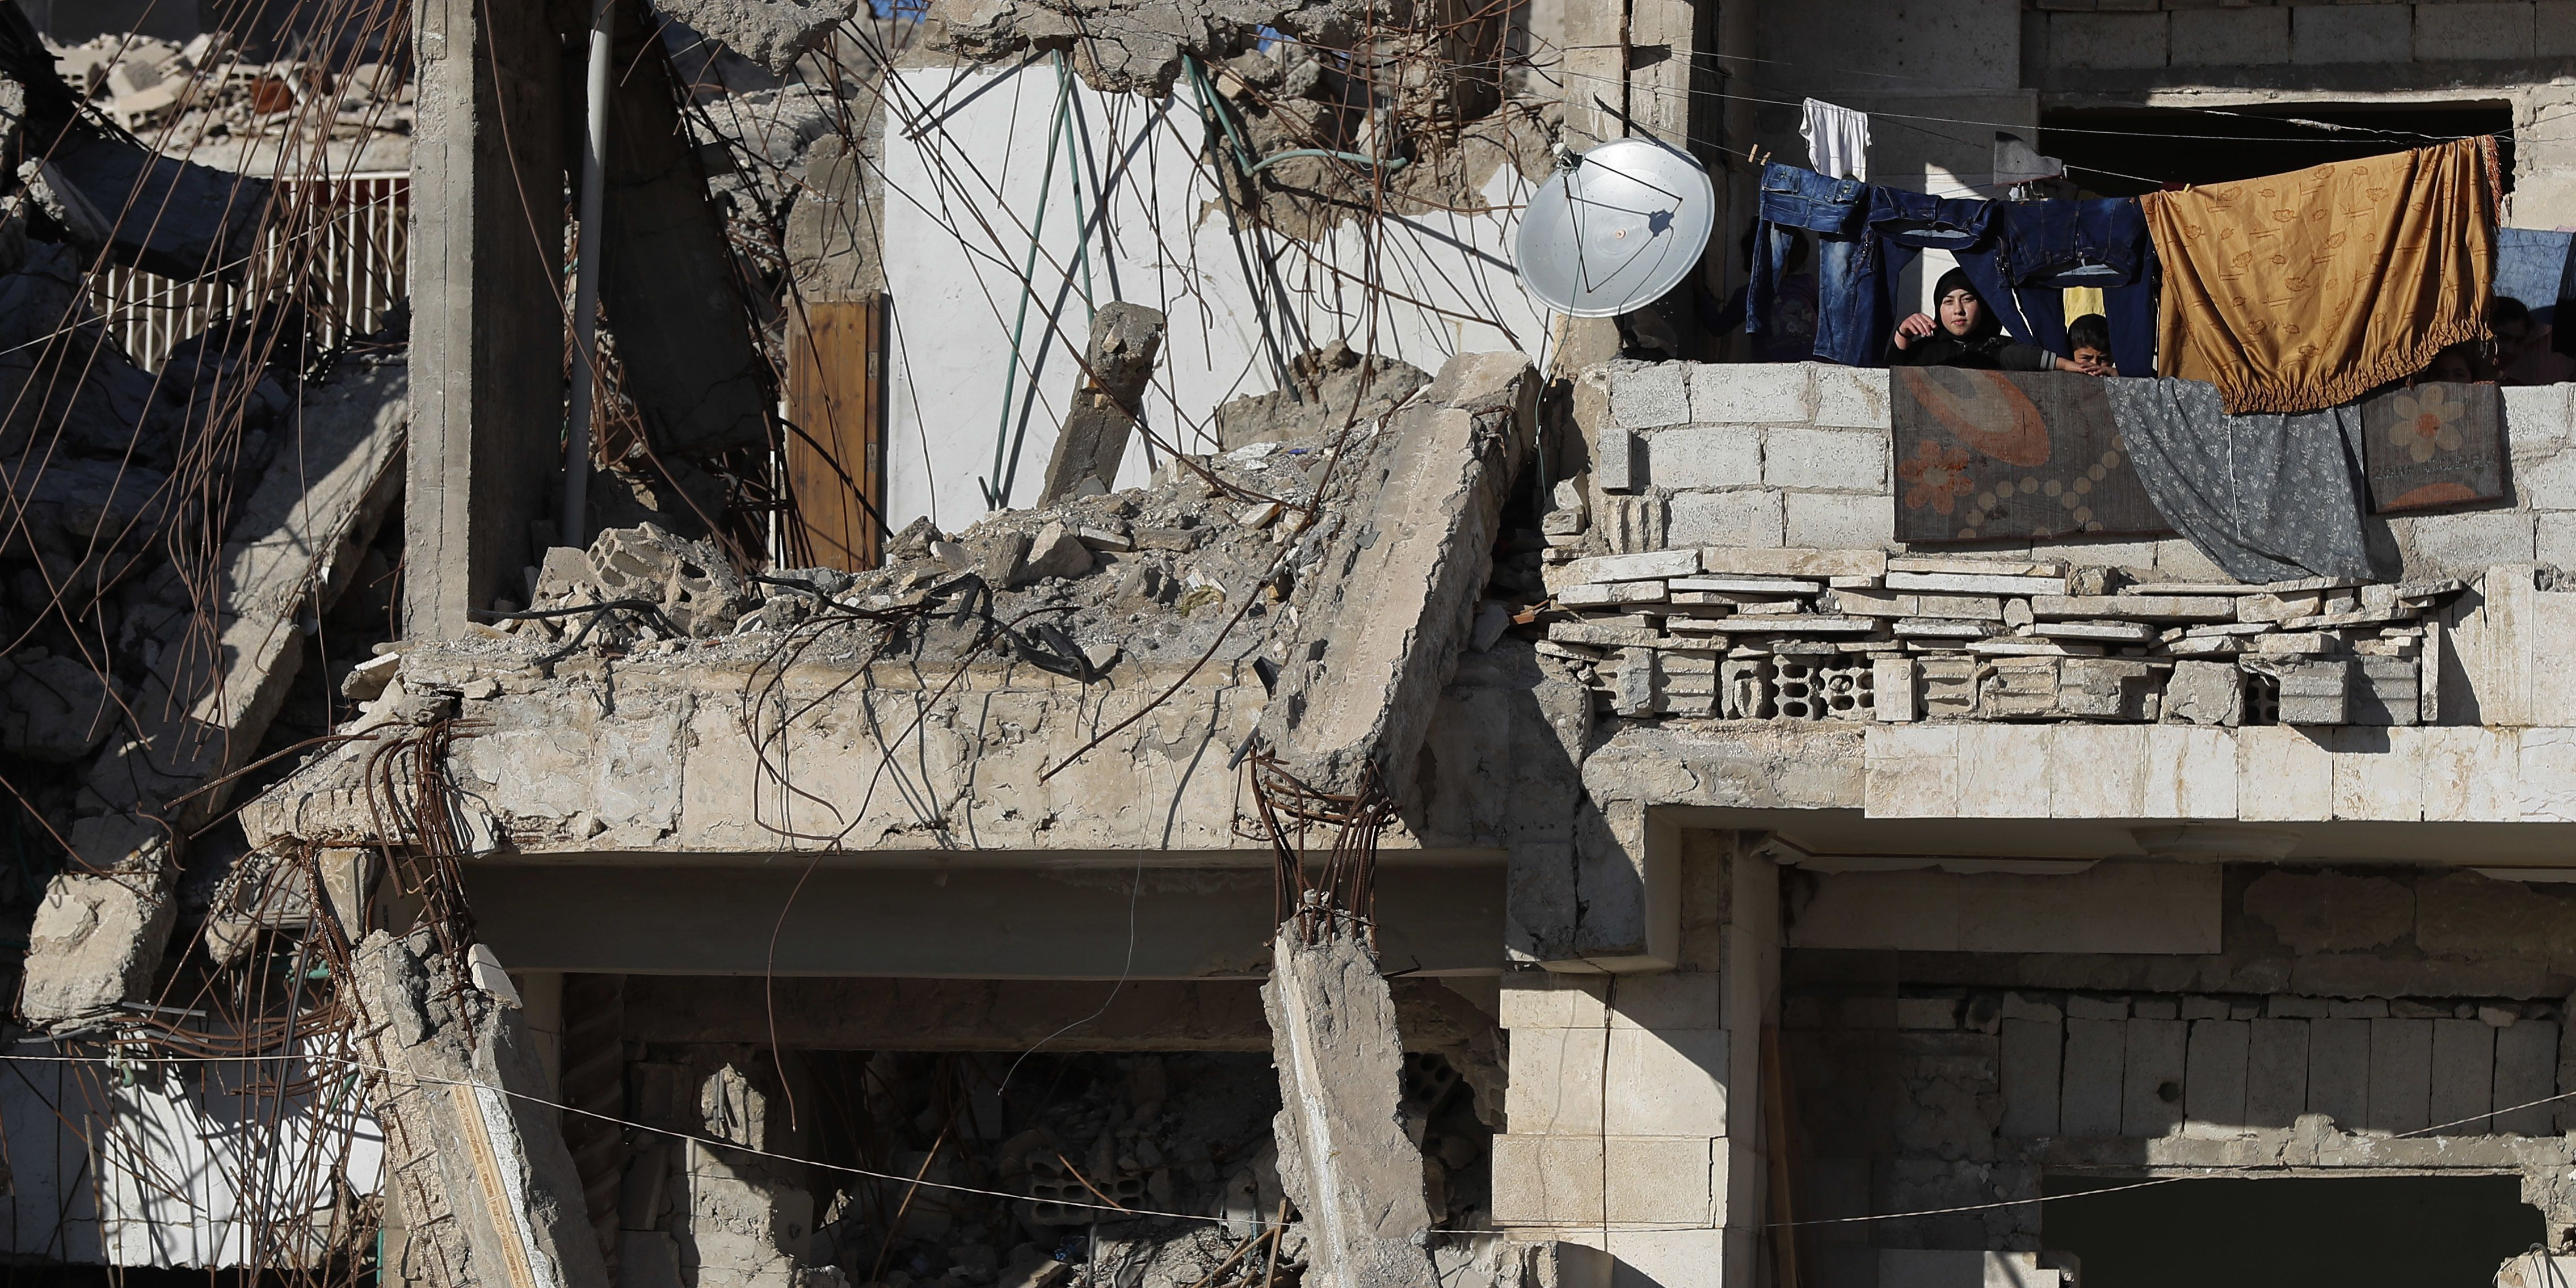 US official says troop withdrawal from Syria has started